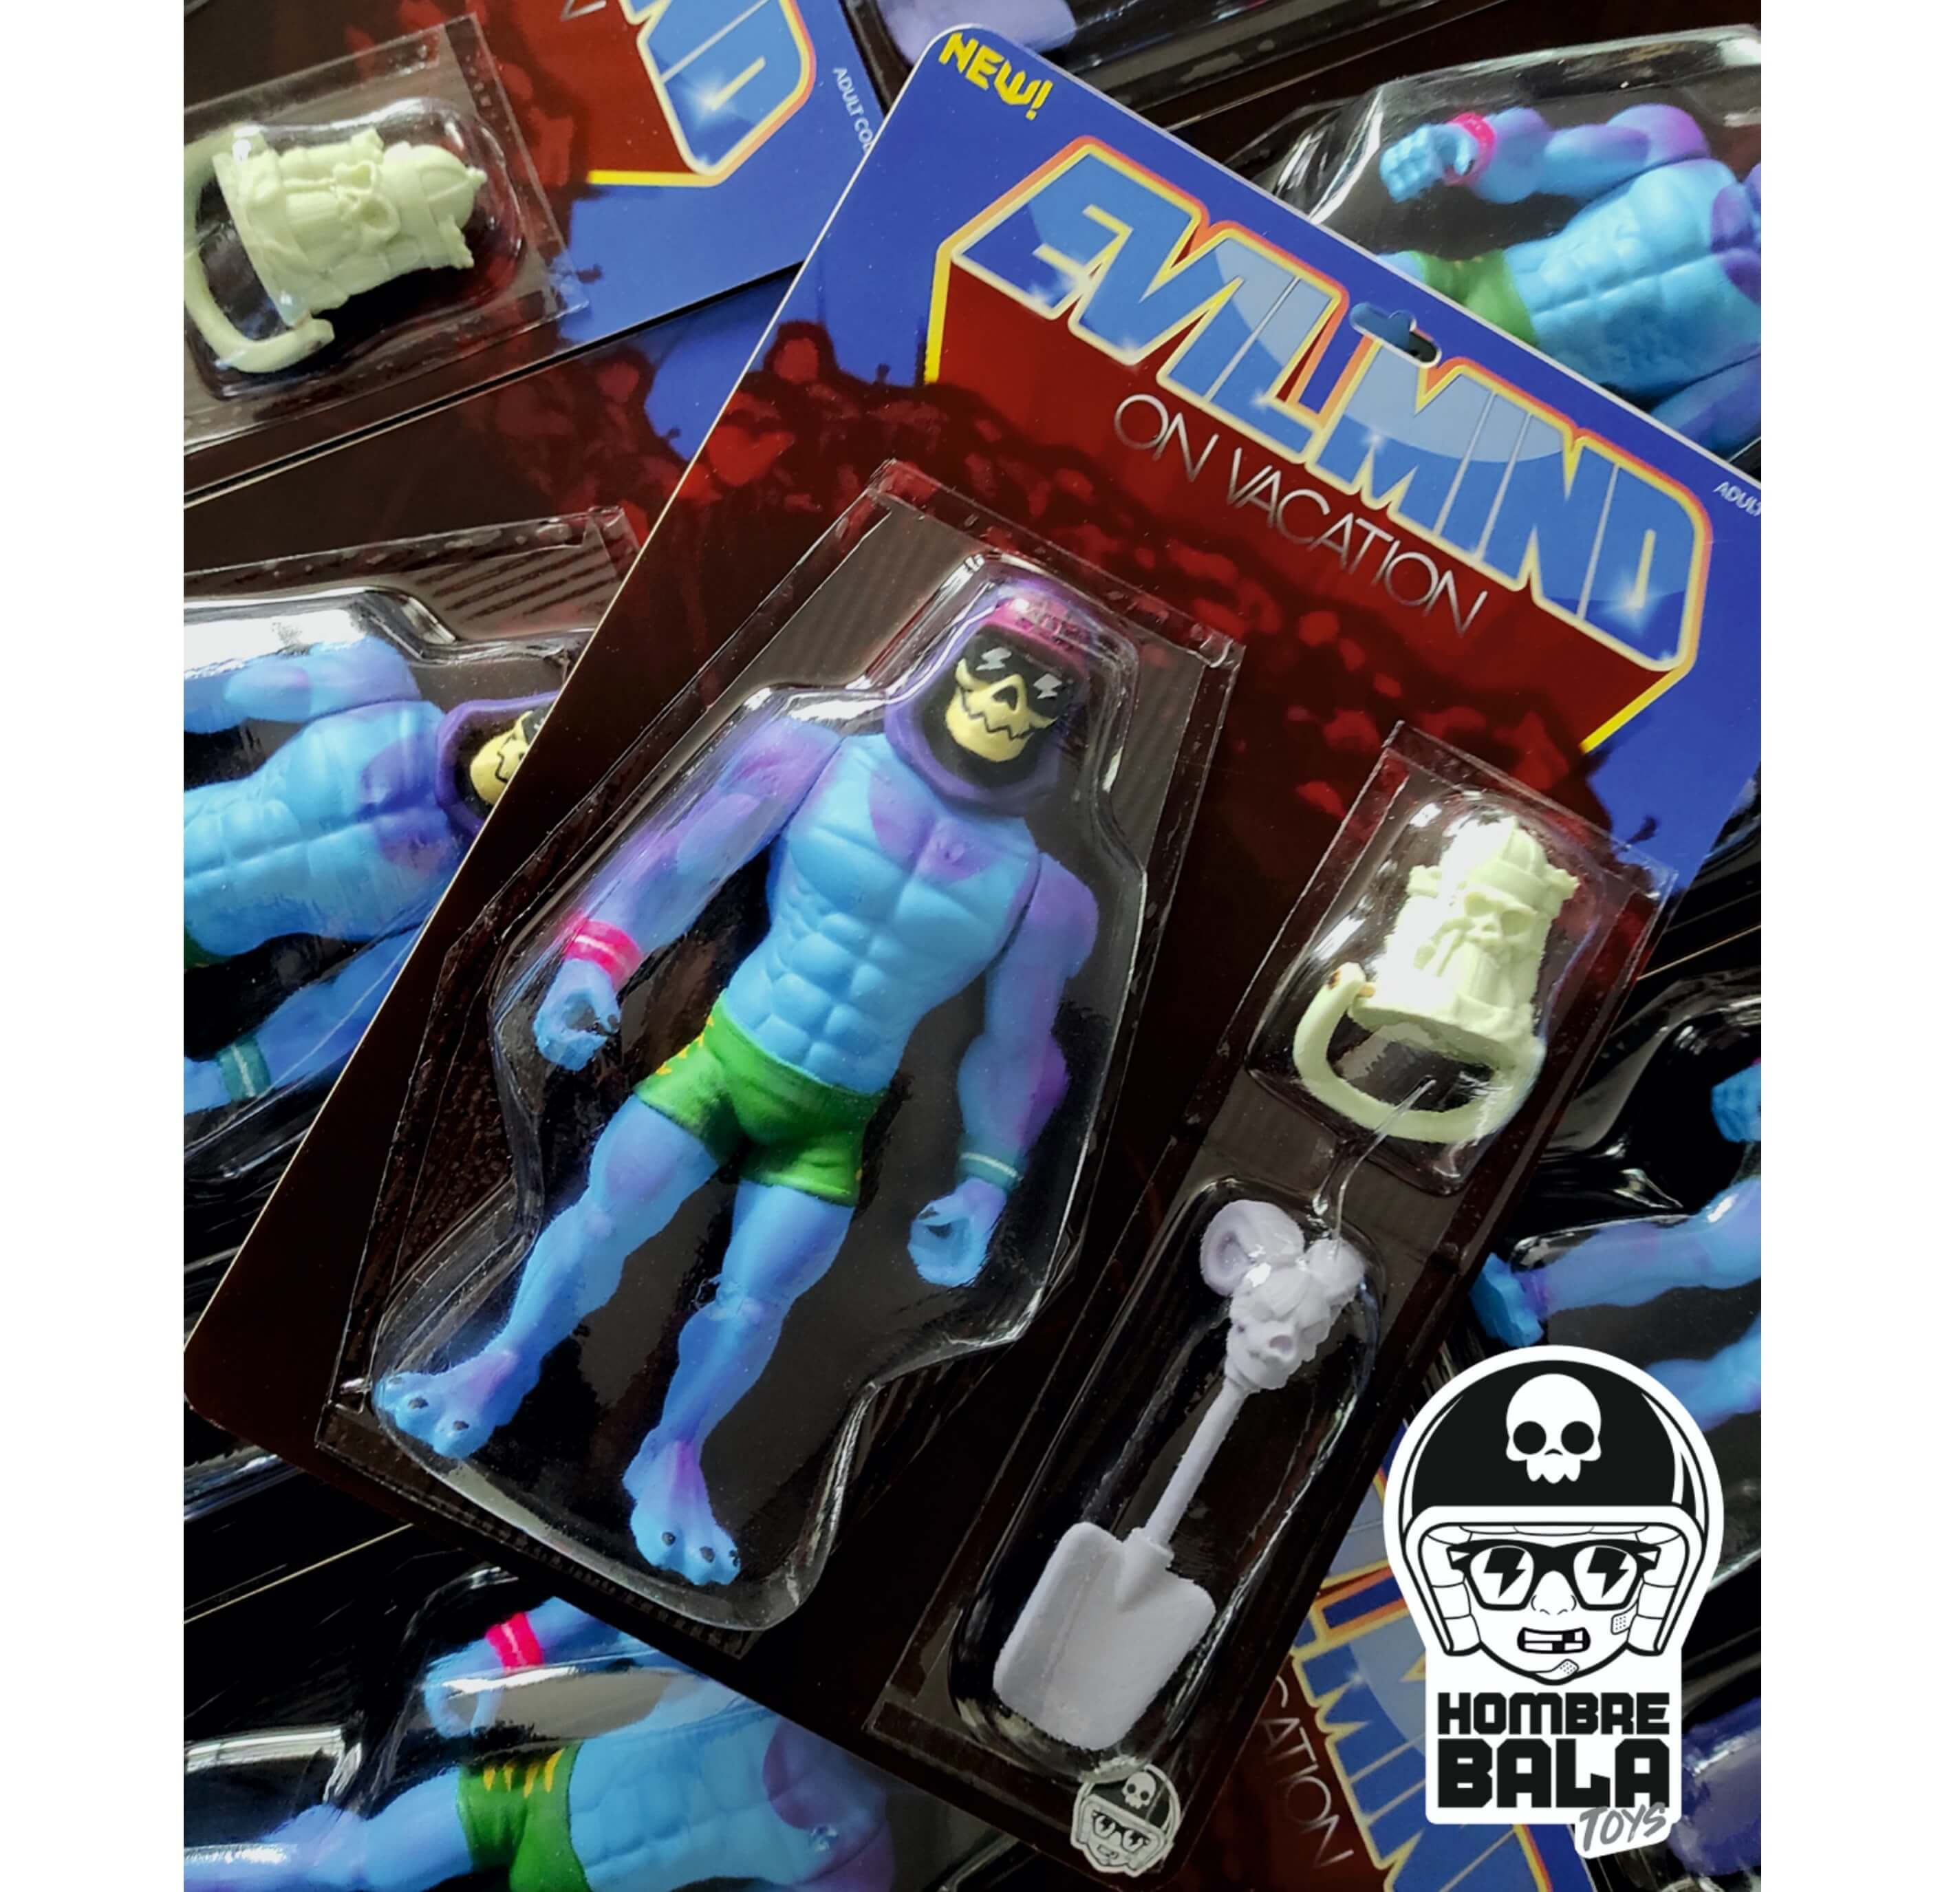 Evil Mind on Vacation Skeletor Hombre bala Toys